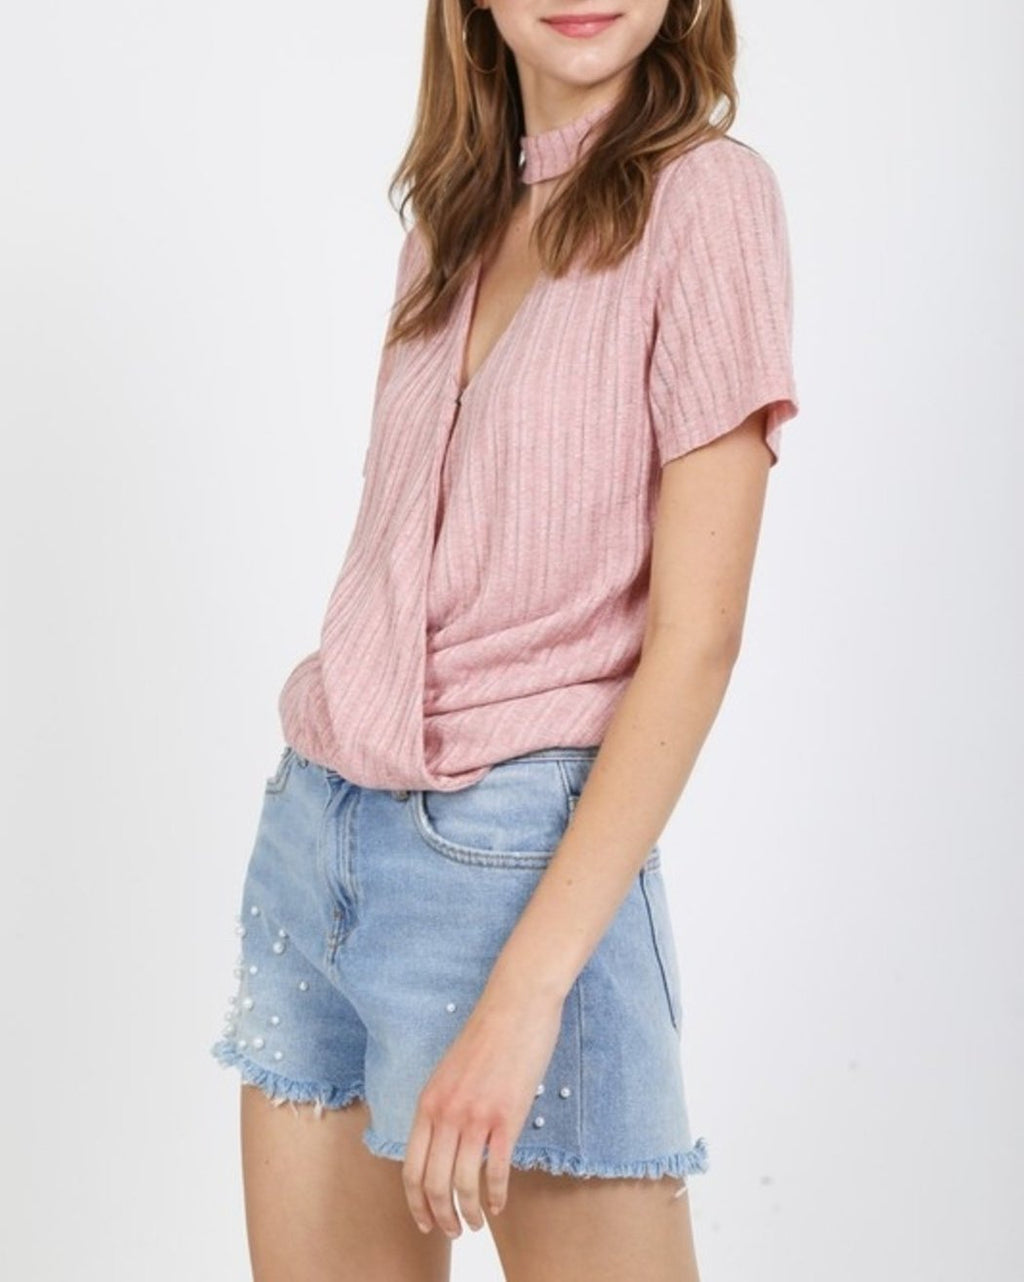 Summer Ready Top